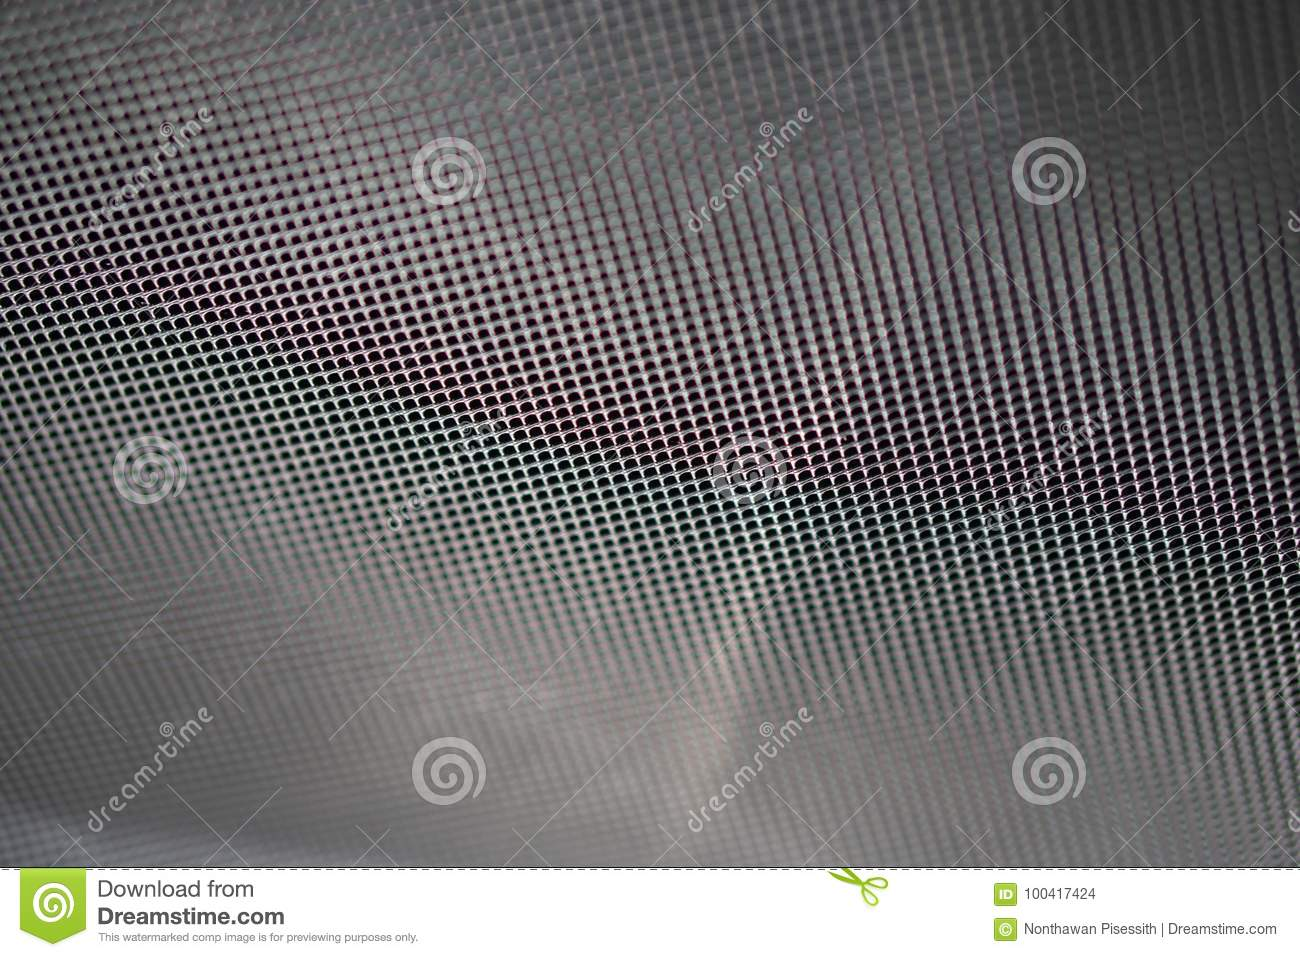 Close up abstract automotive technology background texture pattern